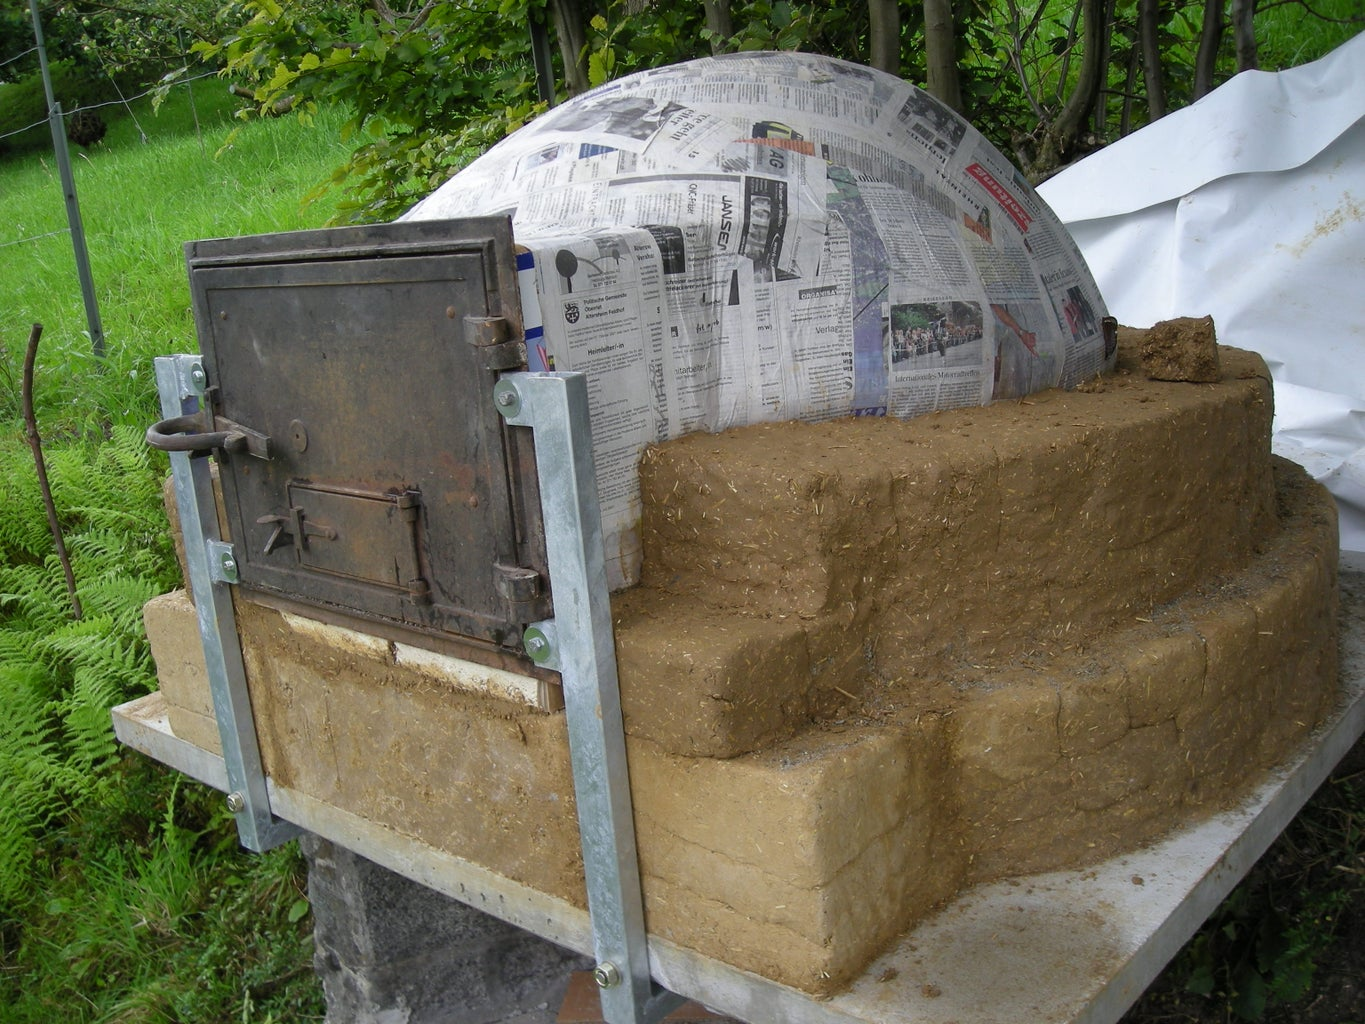 Building the Oven / Making the Building Material